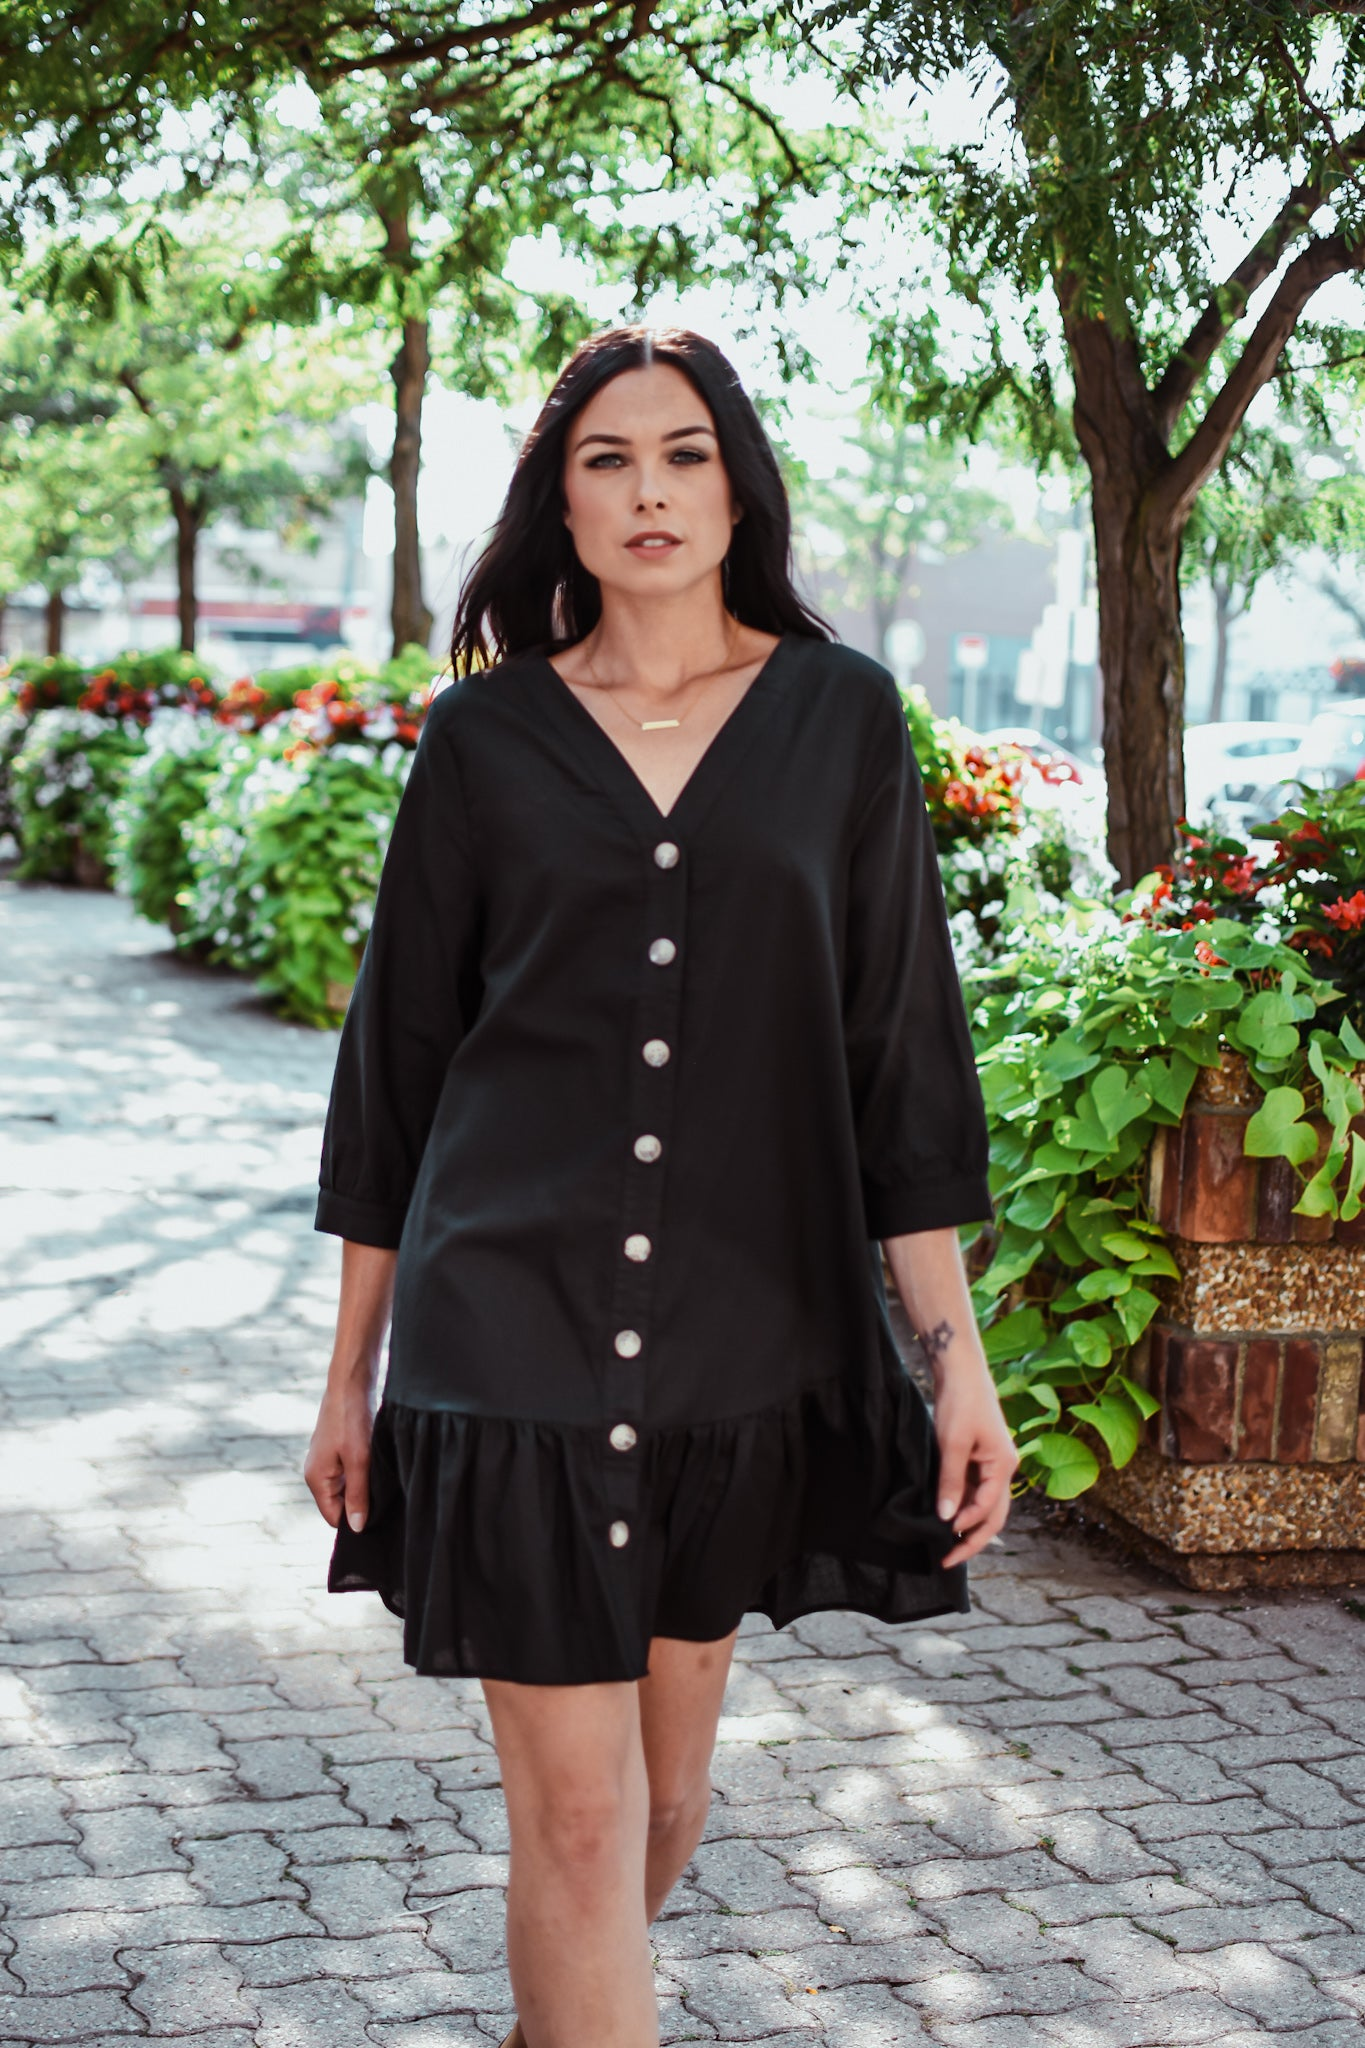 zSOLD OUTz Button Up Ruffle Dress in Black